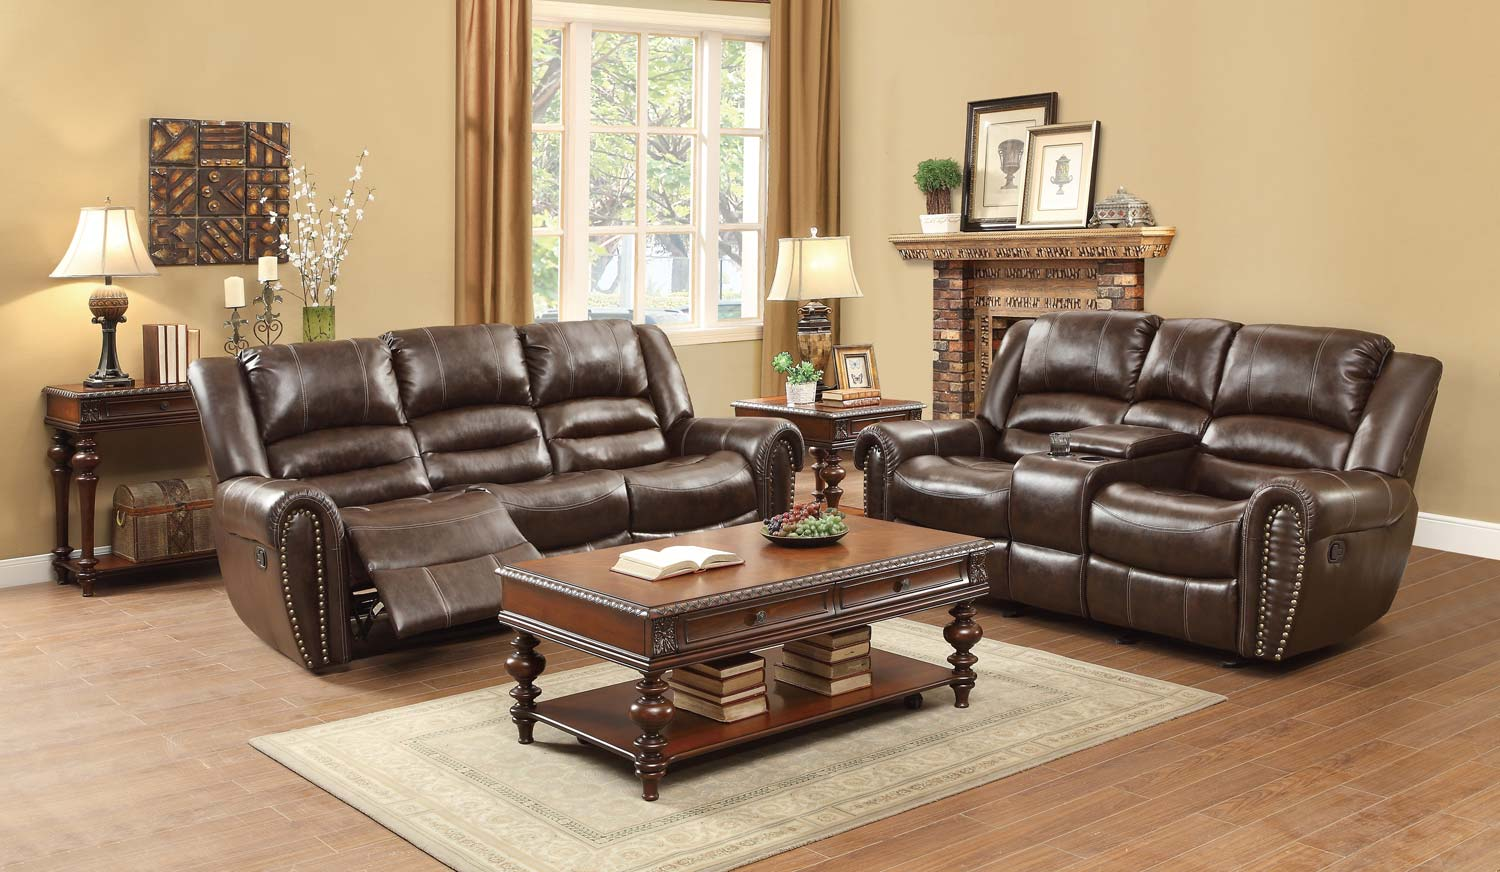 Homelegance Center Hill Reclining Sofa Set Dark Brown Bonded Leather Match 9668brw Sofa Set